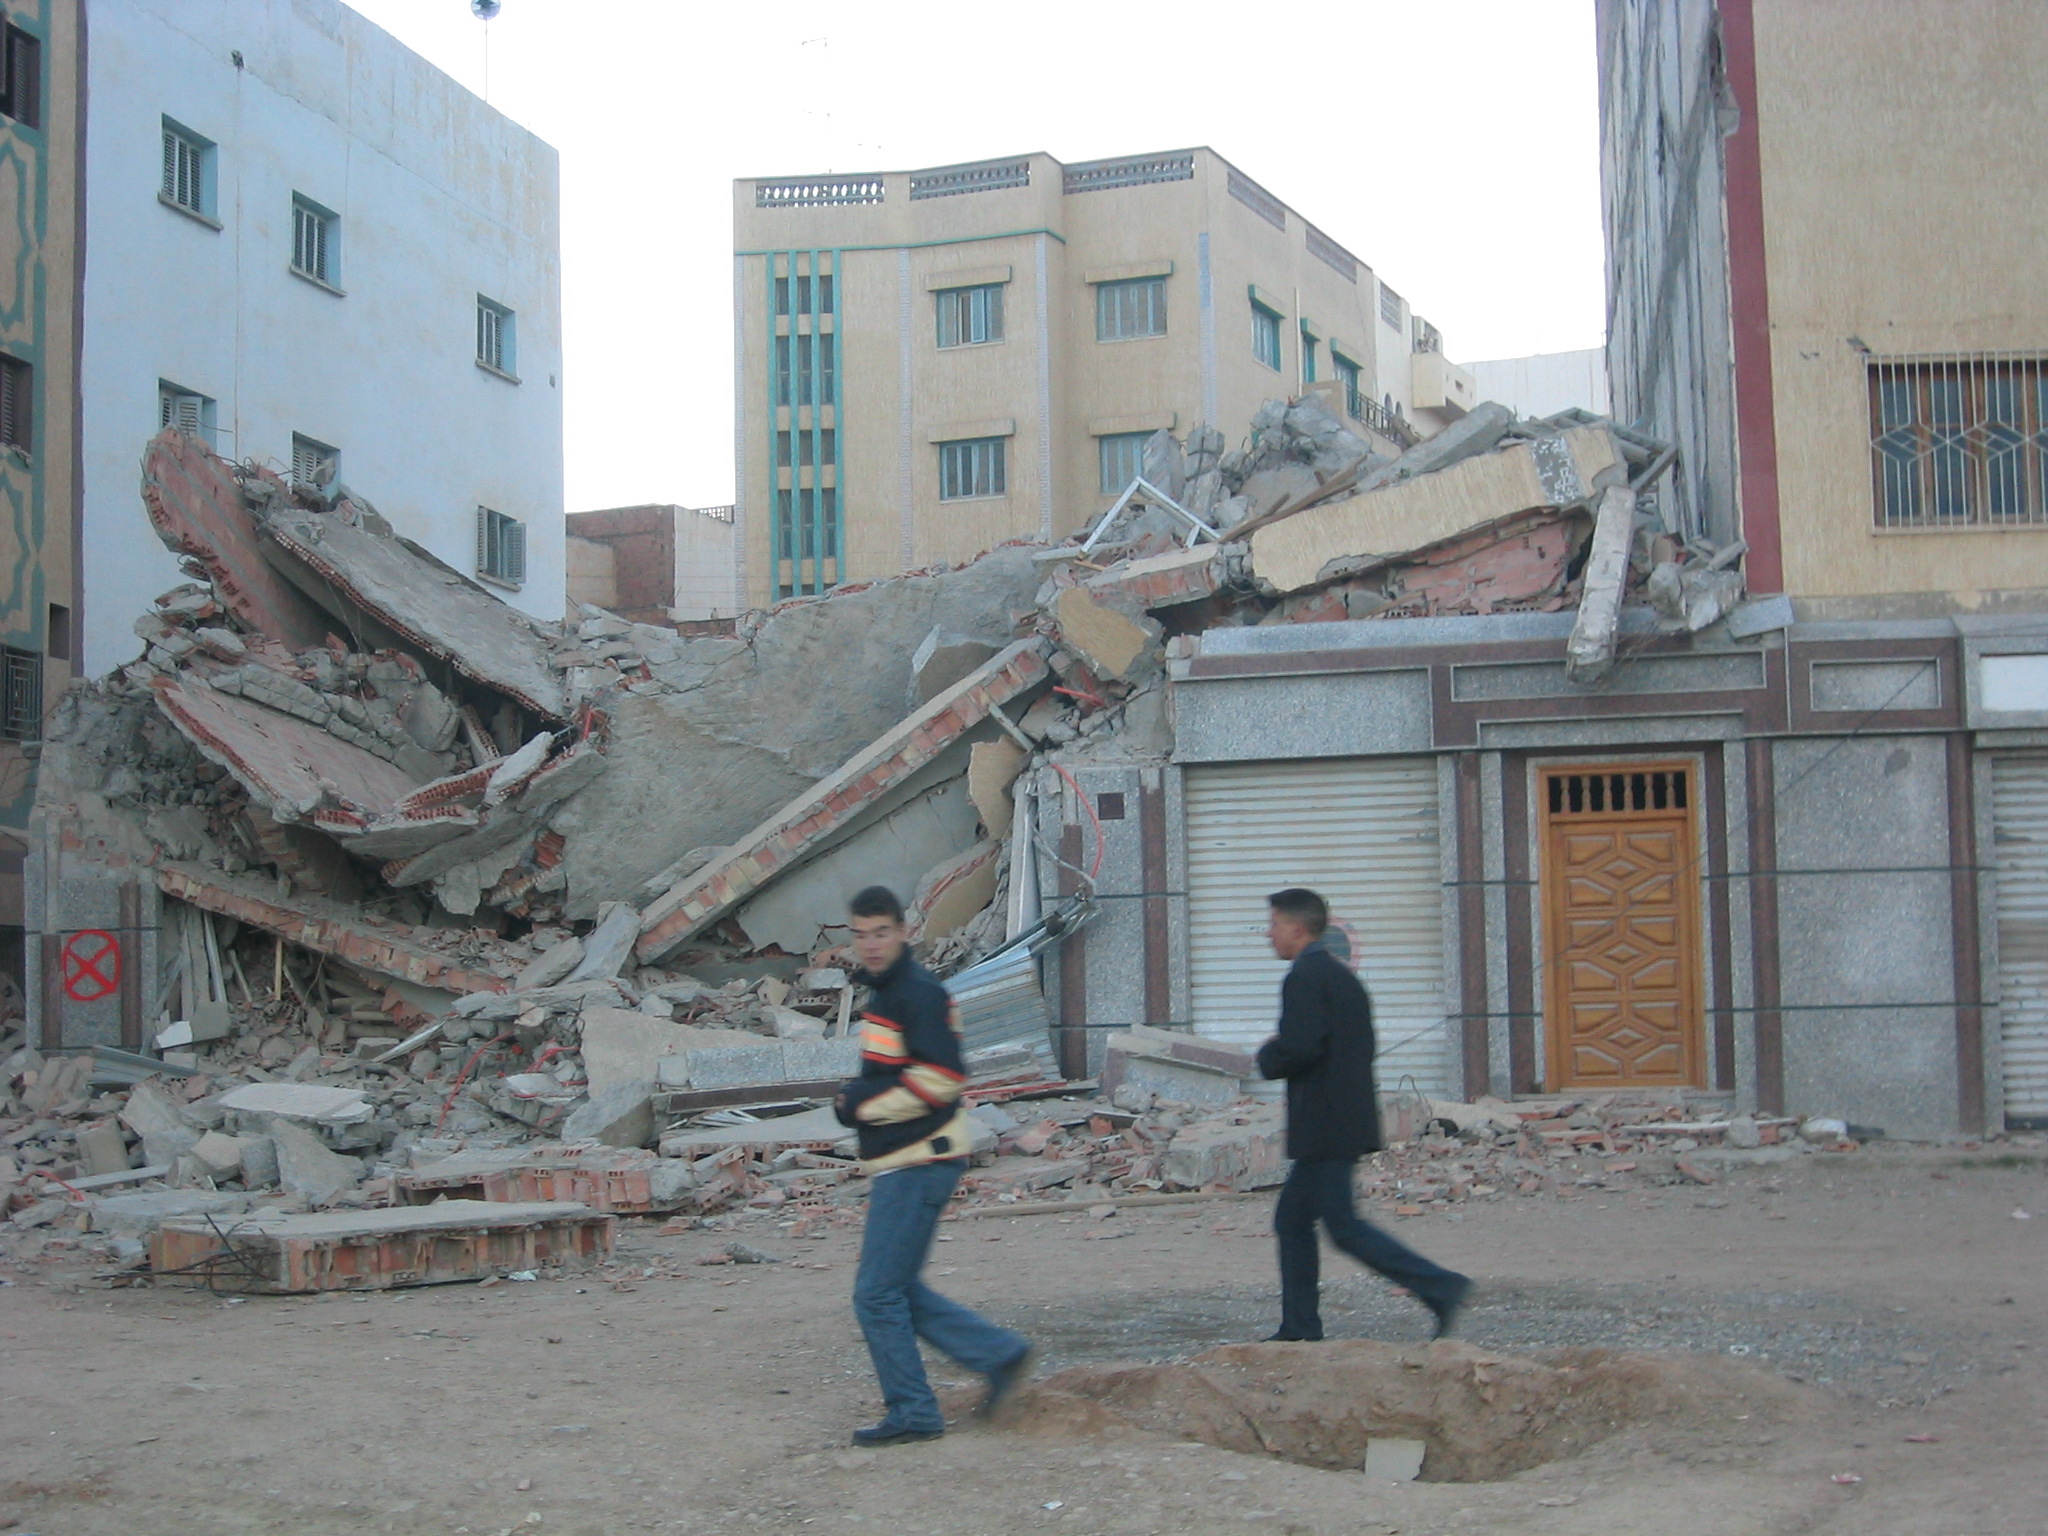 After the 2004 earthquake in Al Hoceima, Morocco